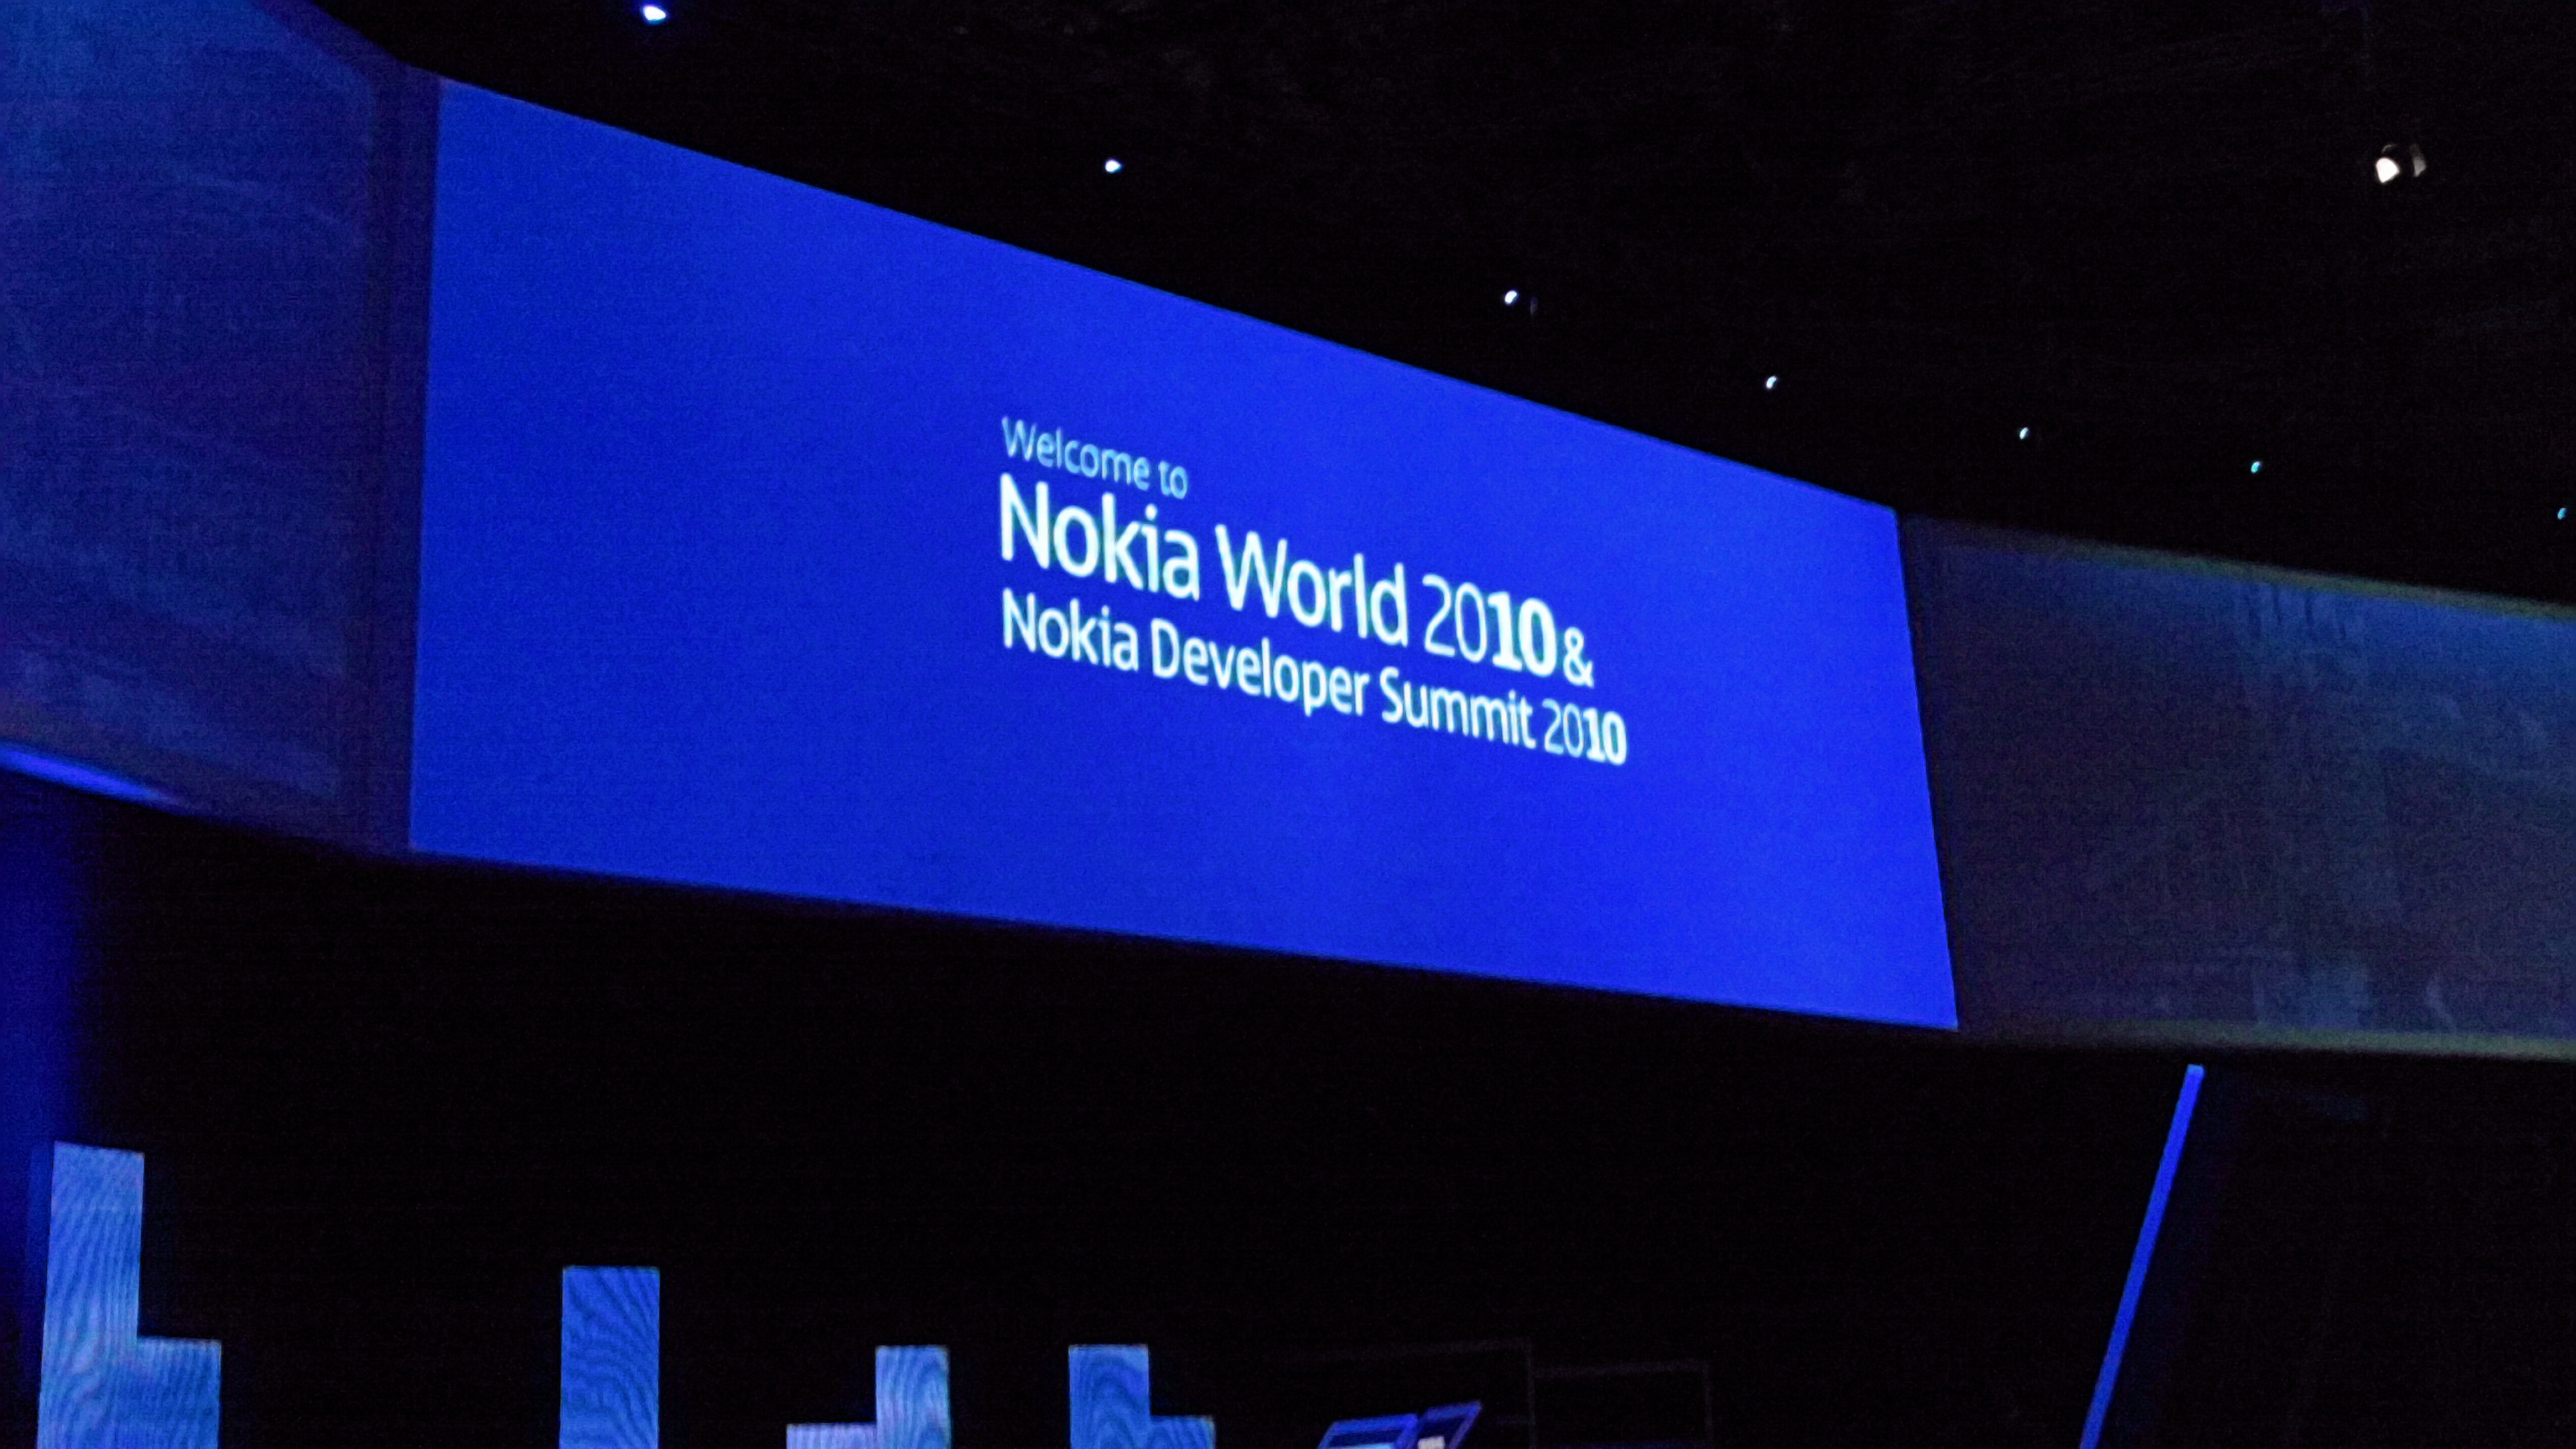 Live from the Nokia World opening keynote